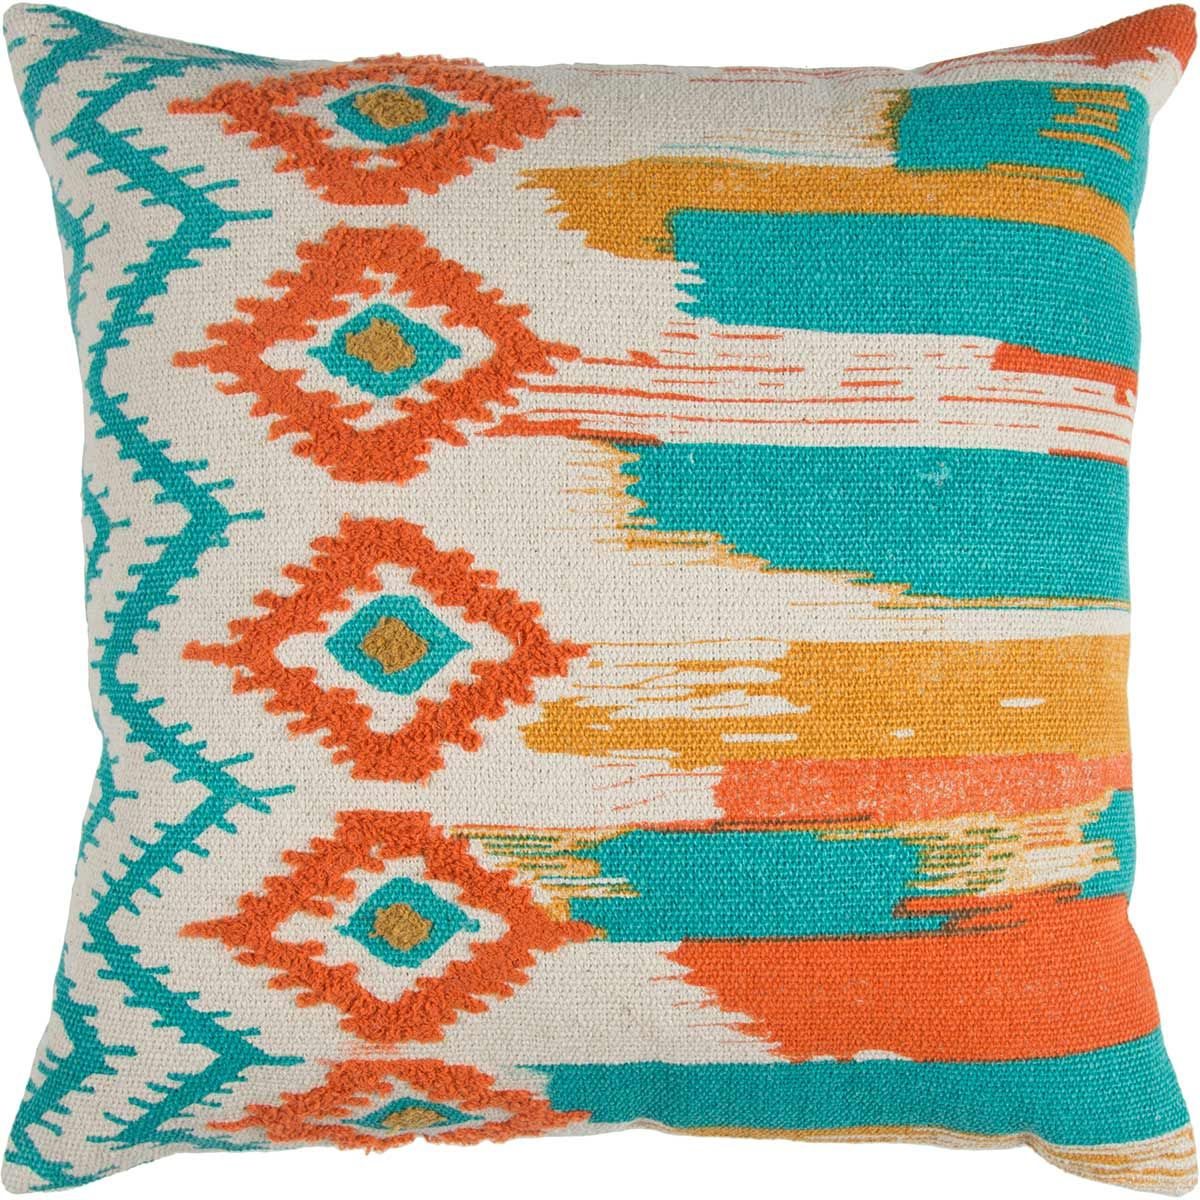 Tribal Brushstrokes Pillow - Teal